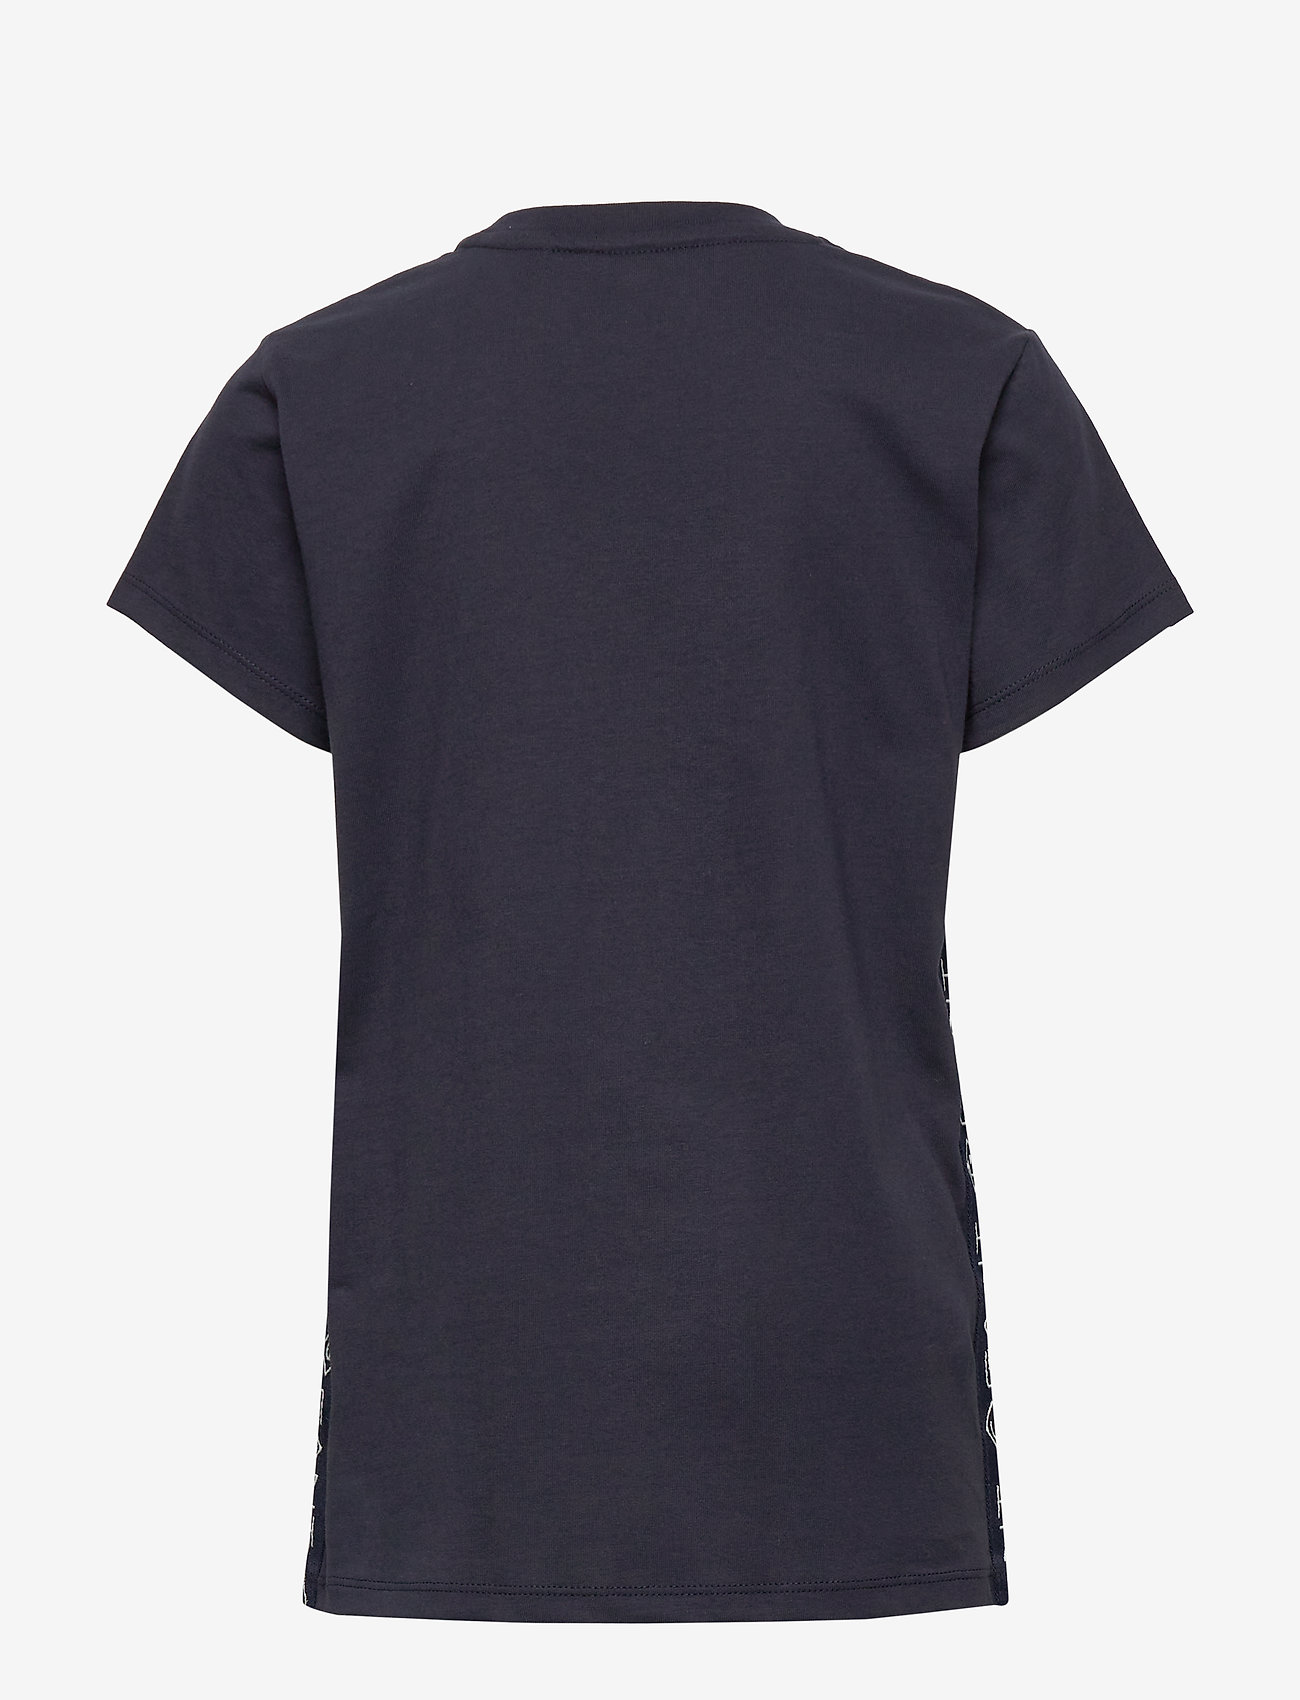 GANT - D1. LOCK UP STRIPE SS T-SHIRT - kurzärmelige - evening blue - 1